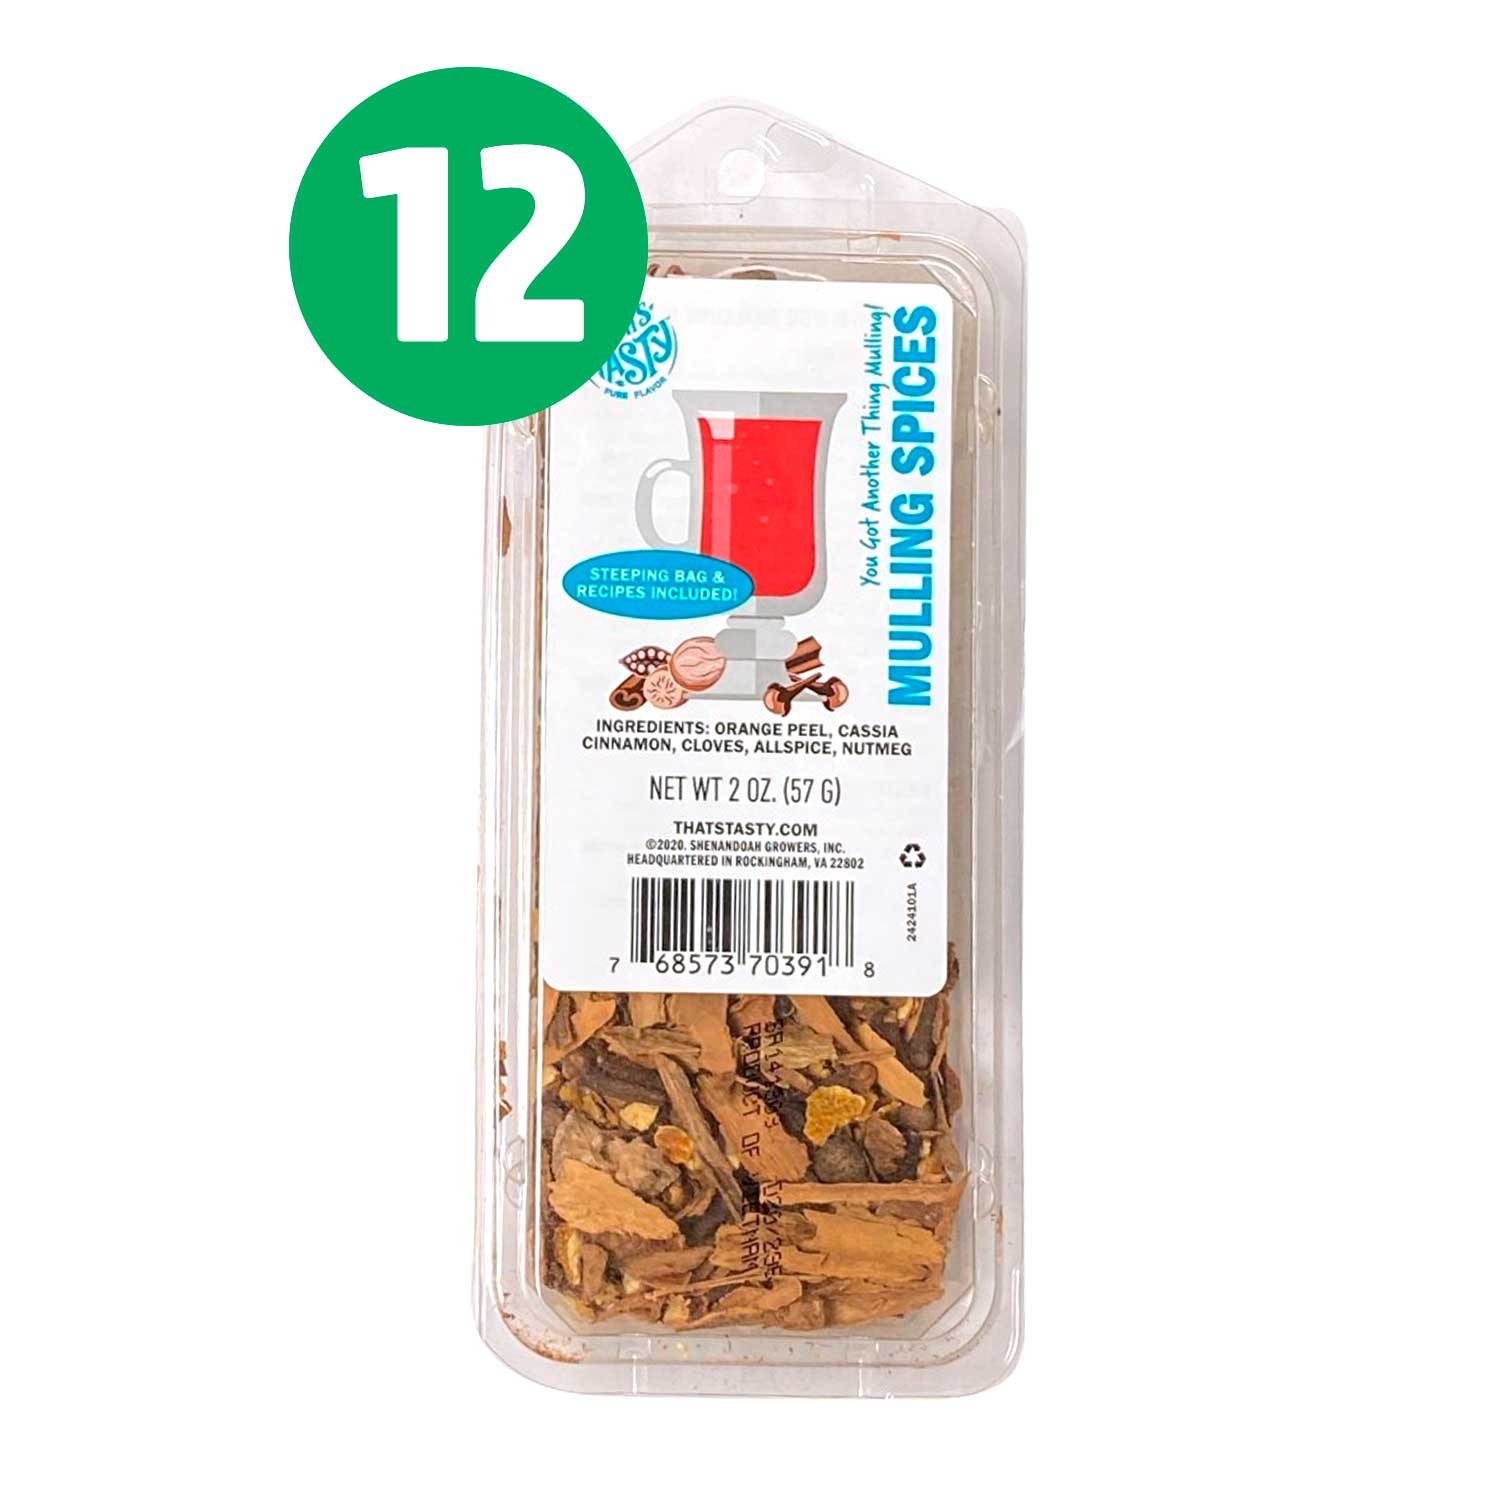 Spices, Mulling Spices - CASE of 12